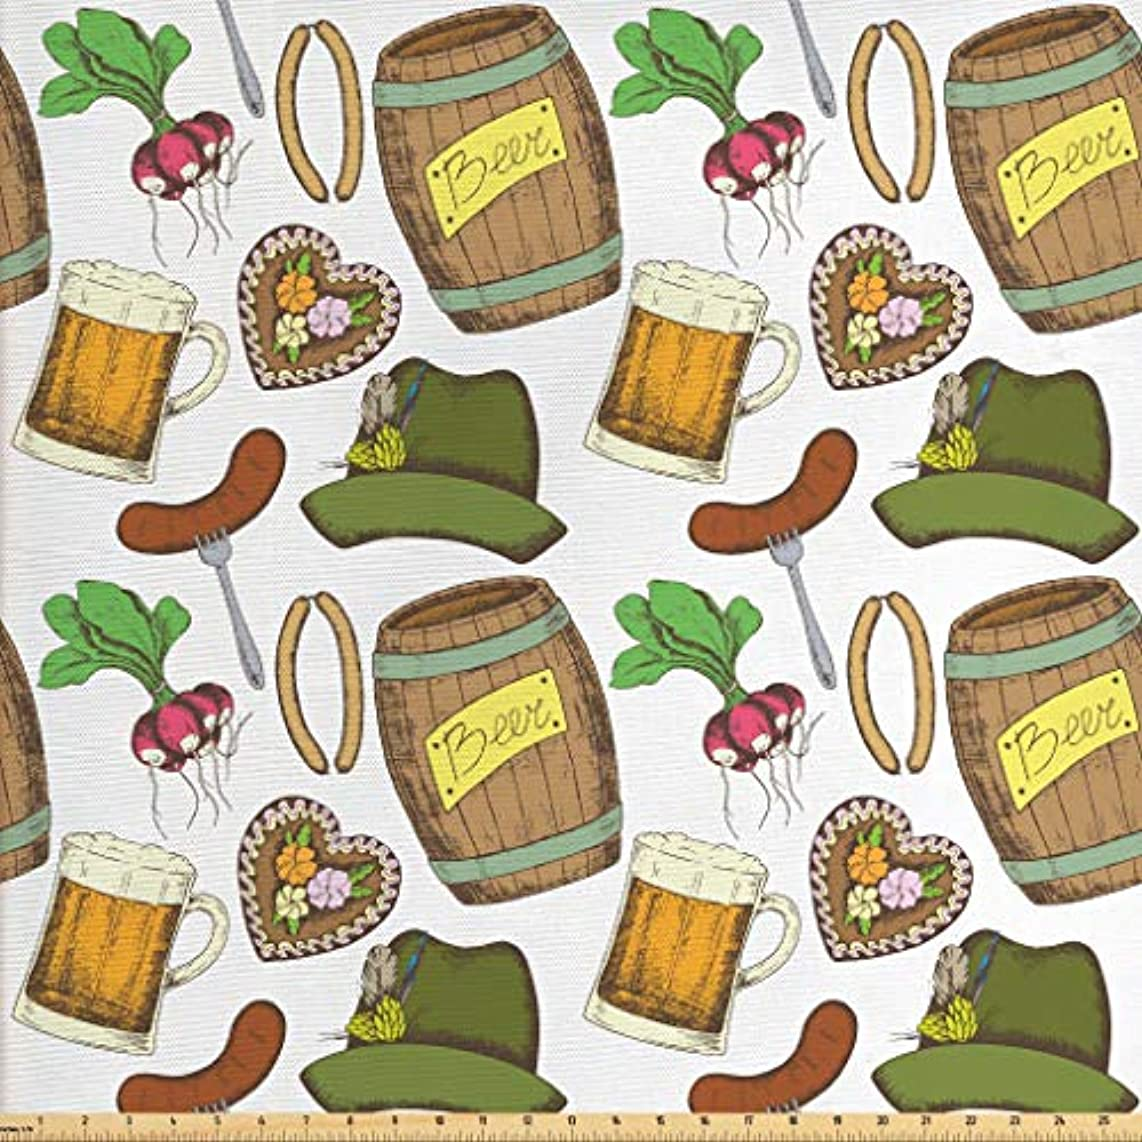 Lunarable Oktoberfest Fabric by The Yard, Many Festive Elements Turnip Sausage Traditional Attire Bavarian Celebration, Decorative Fabric for Upholstery and Home Accents, 3 Yards, Multicolor